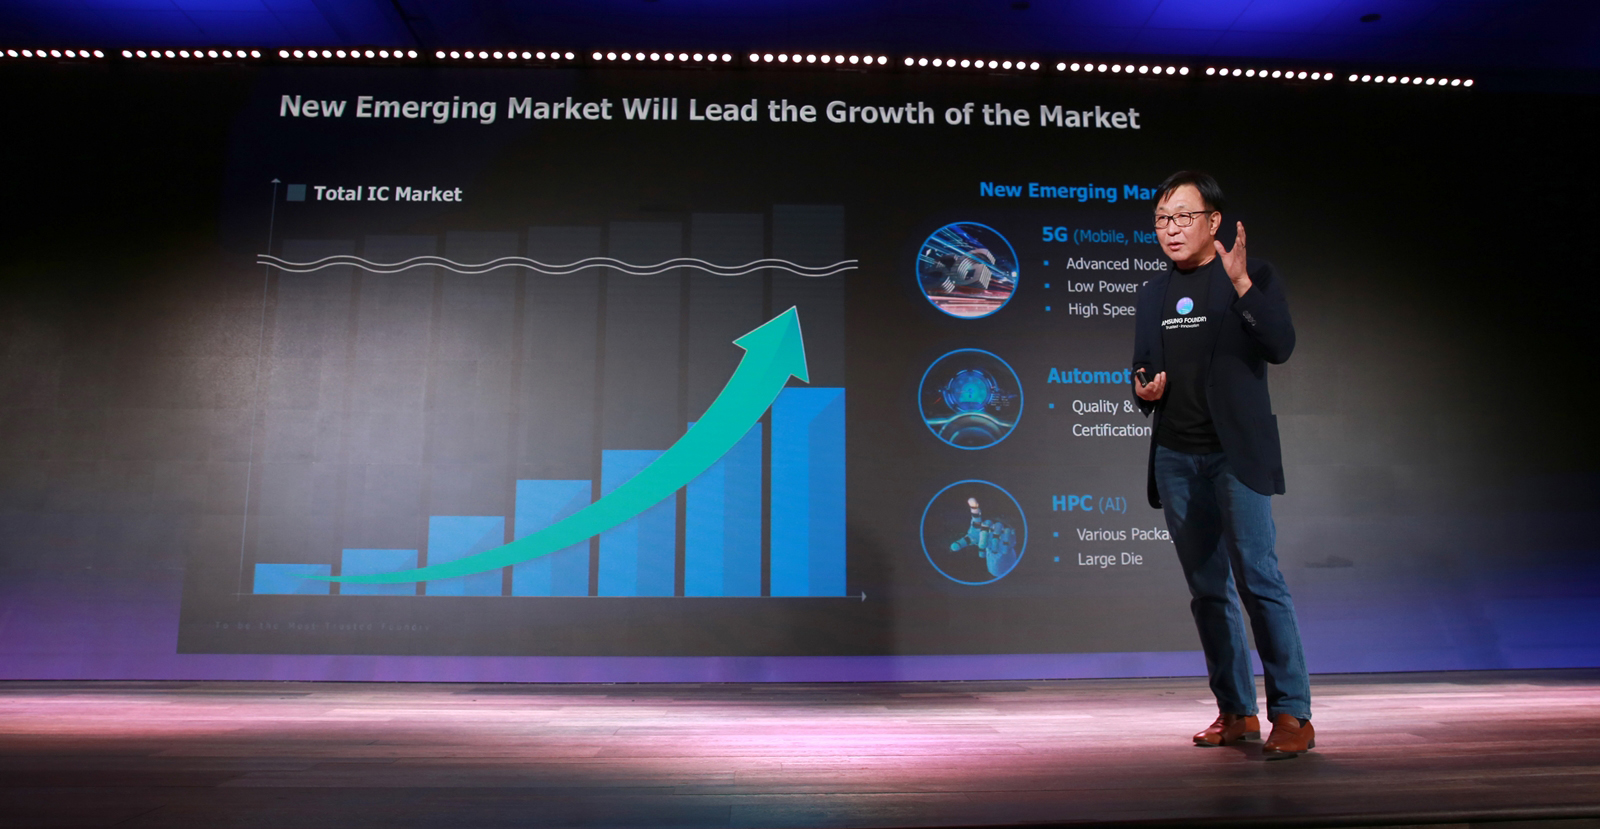 Samsung Electronics' Leadership in Advanced Foundry Technology